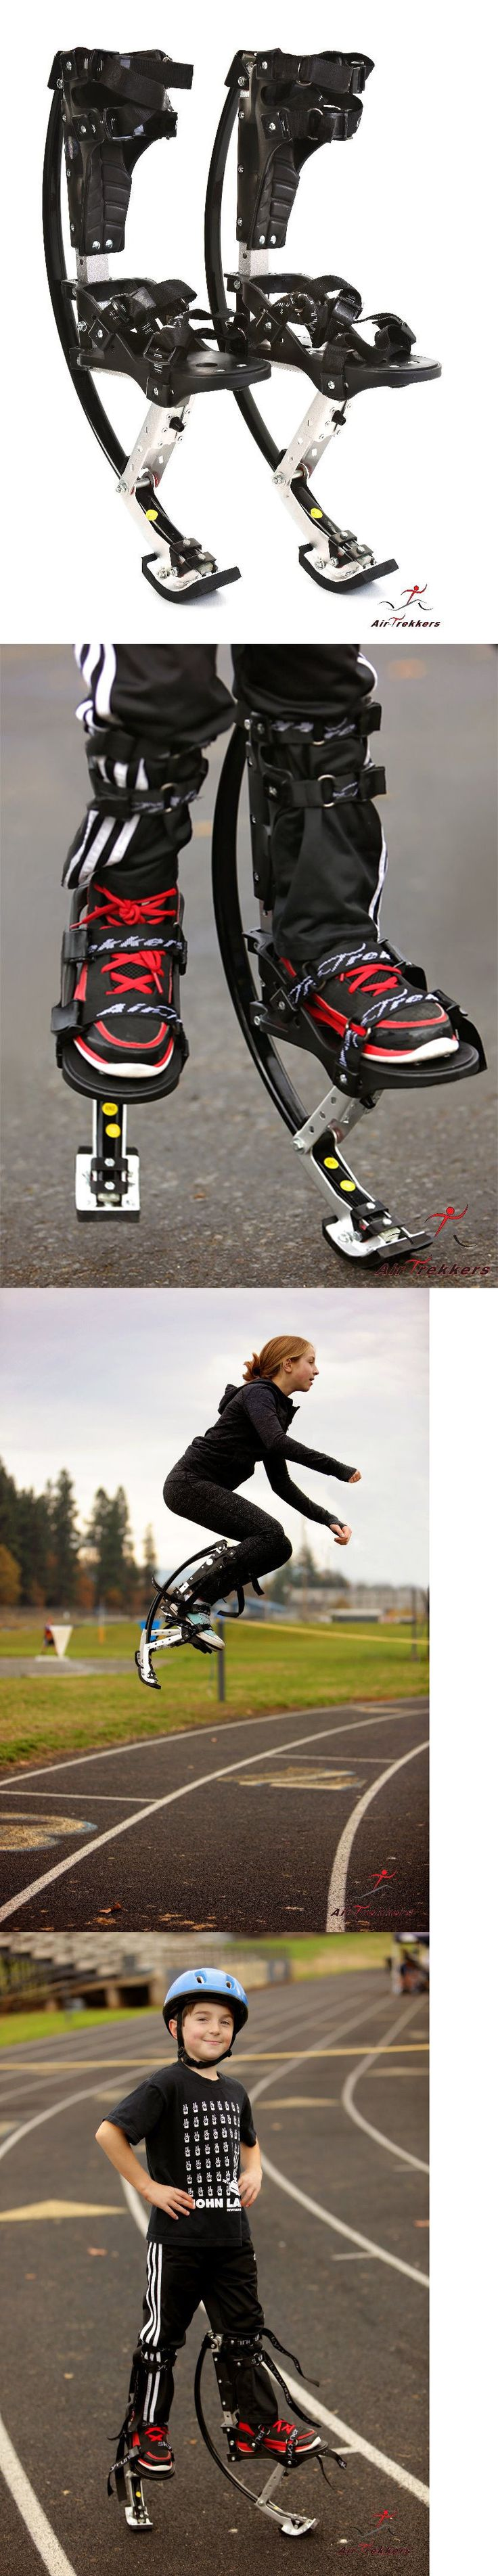 Other Outdoor Sports 159048: Air-Trekker Jumping Stilts Youth Model -Large 95-120 Lbs -> BUY IT NOW ONLY: $199 on eBay!